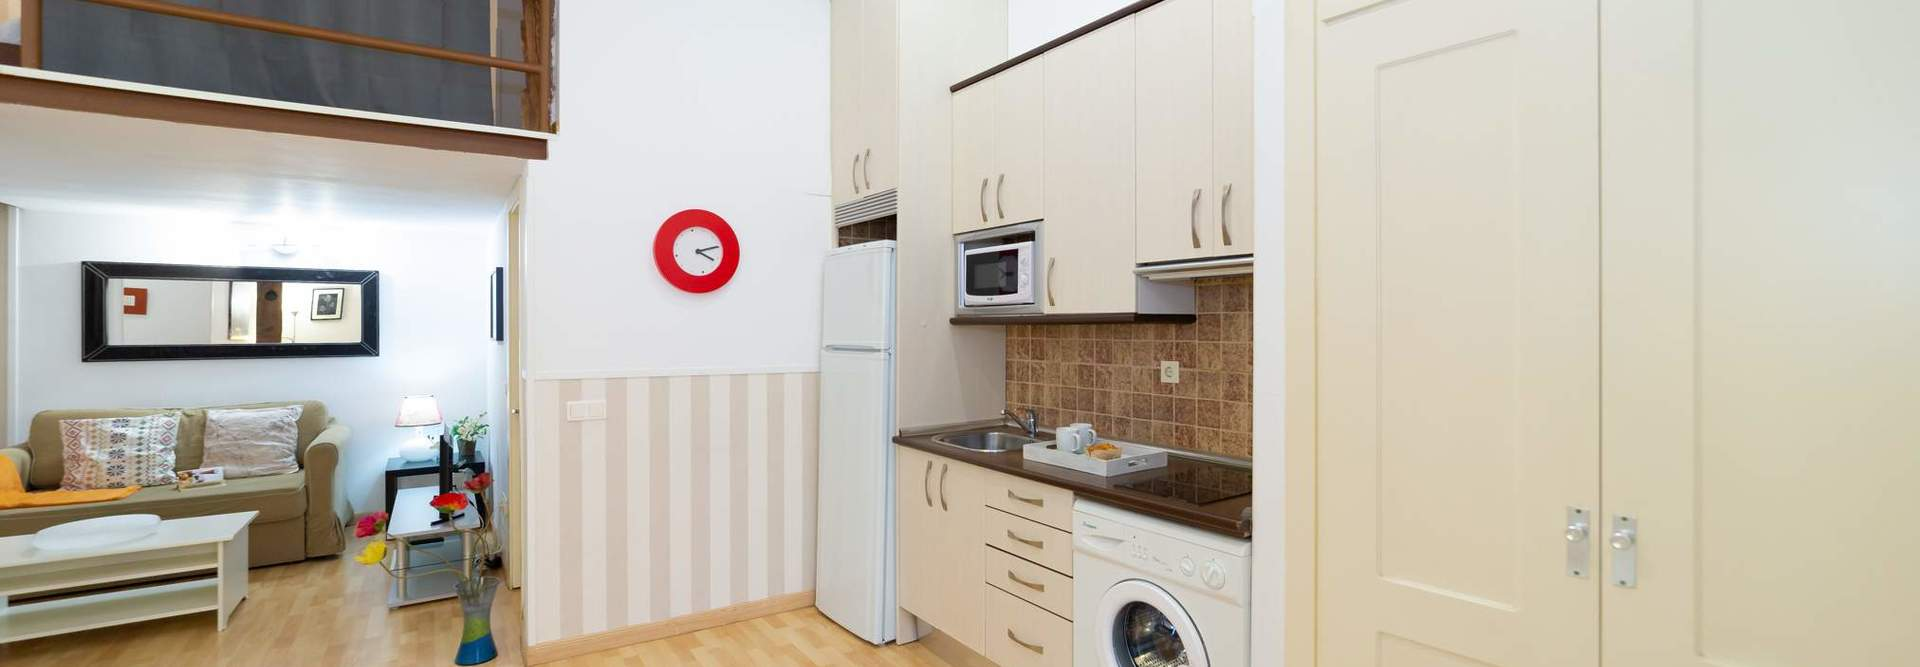 Home alquiler apartamentos madrid mad4rent 24